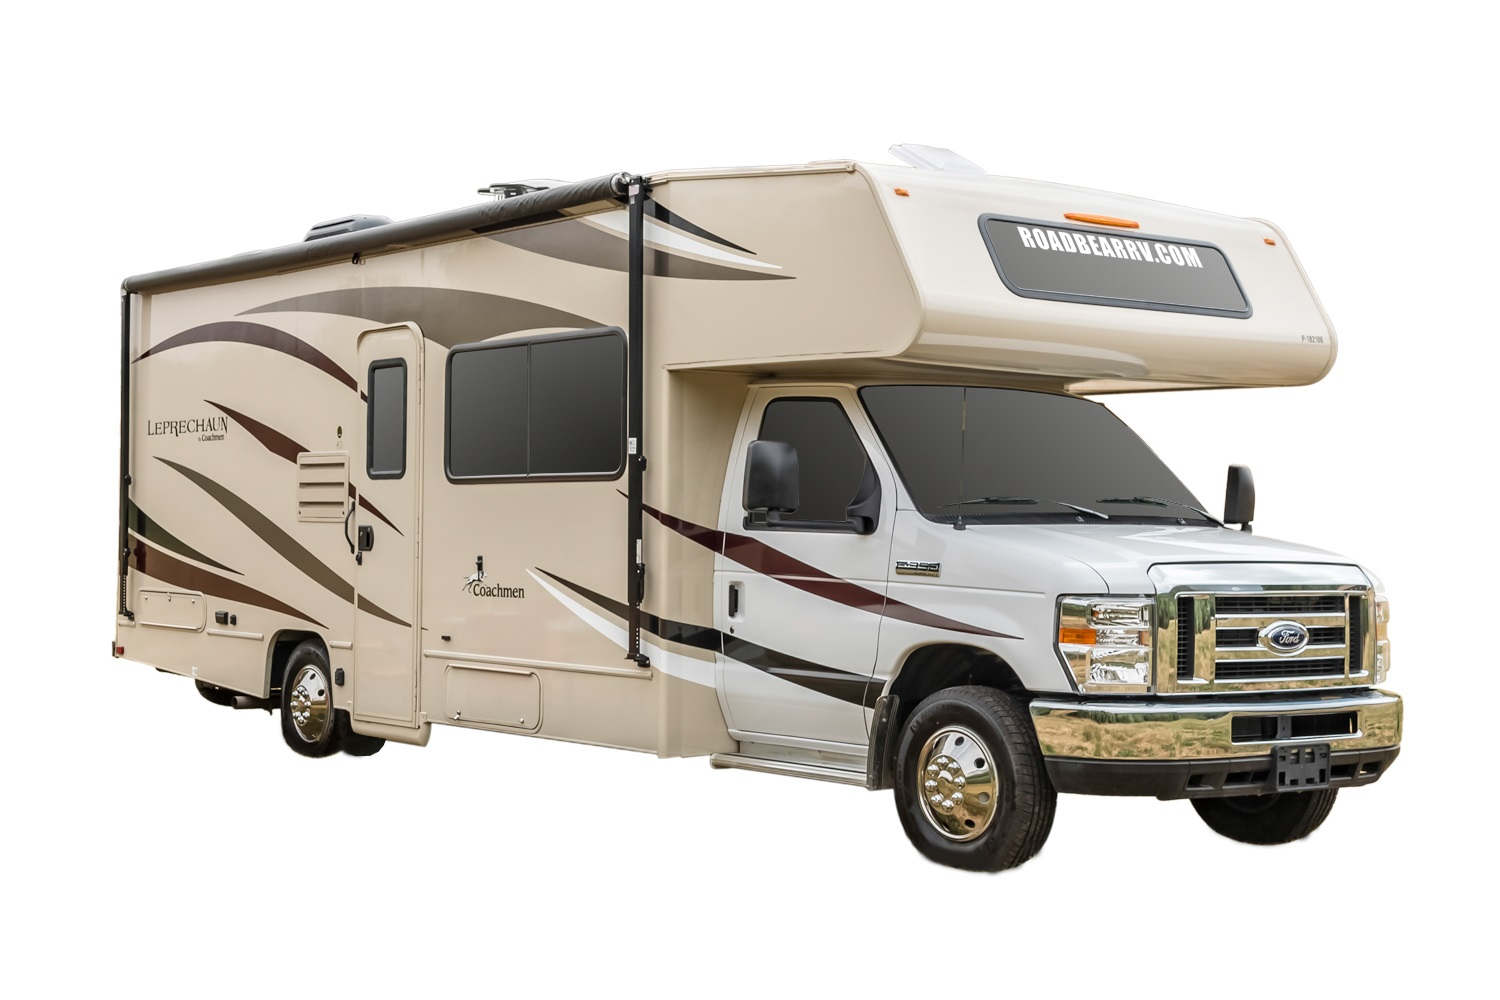 Star Drive RV USA 25-27 ft Class C Motorhome with slide out